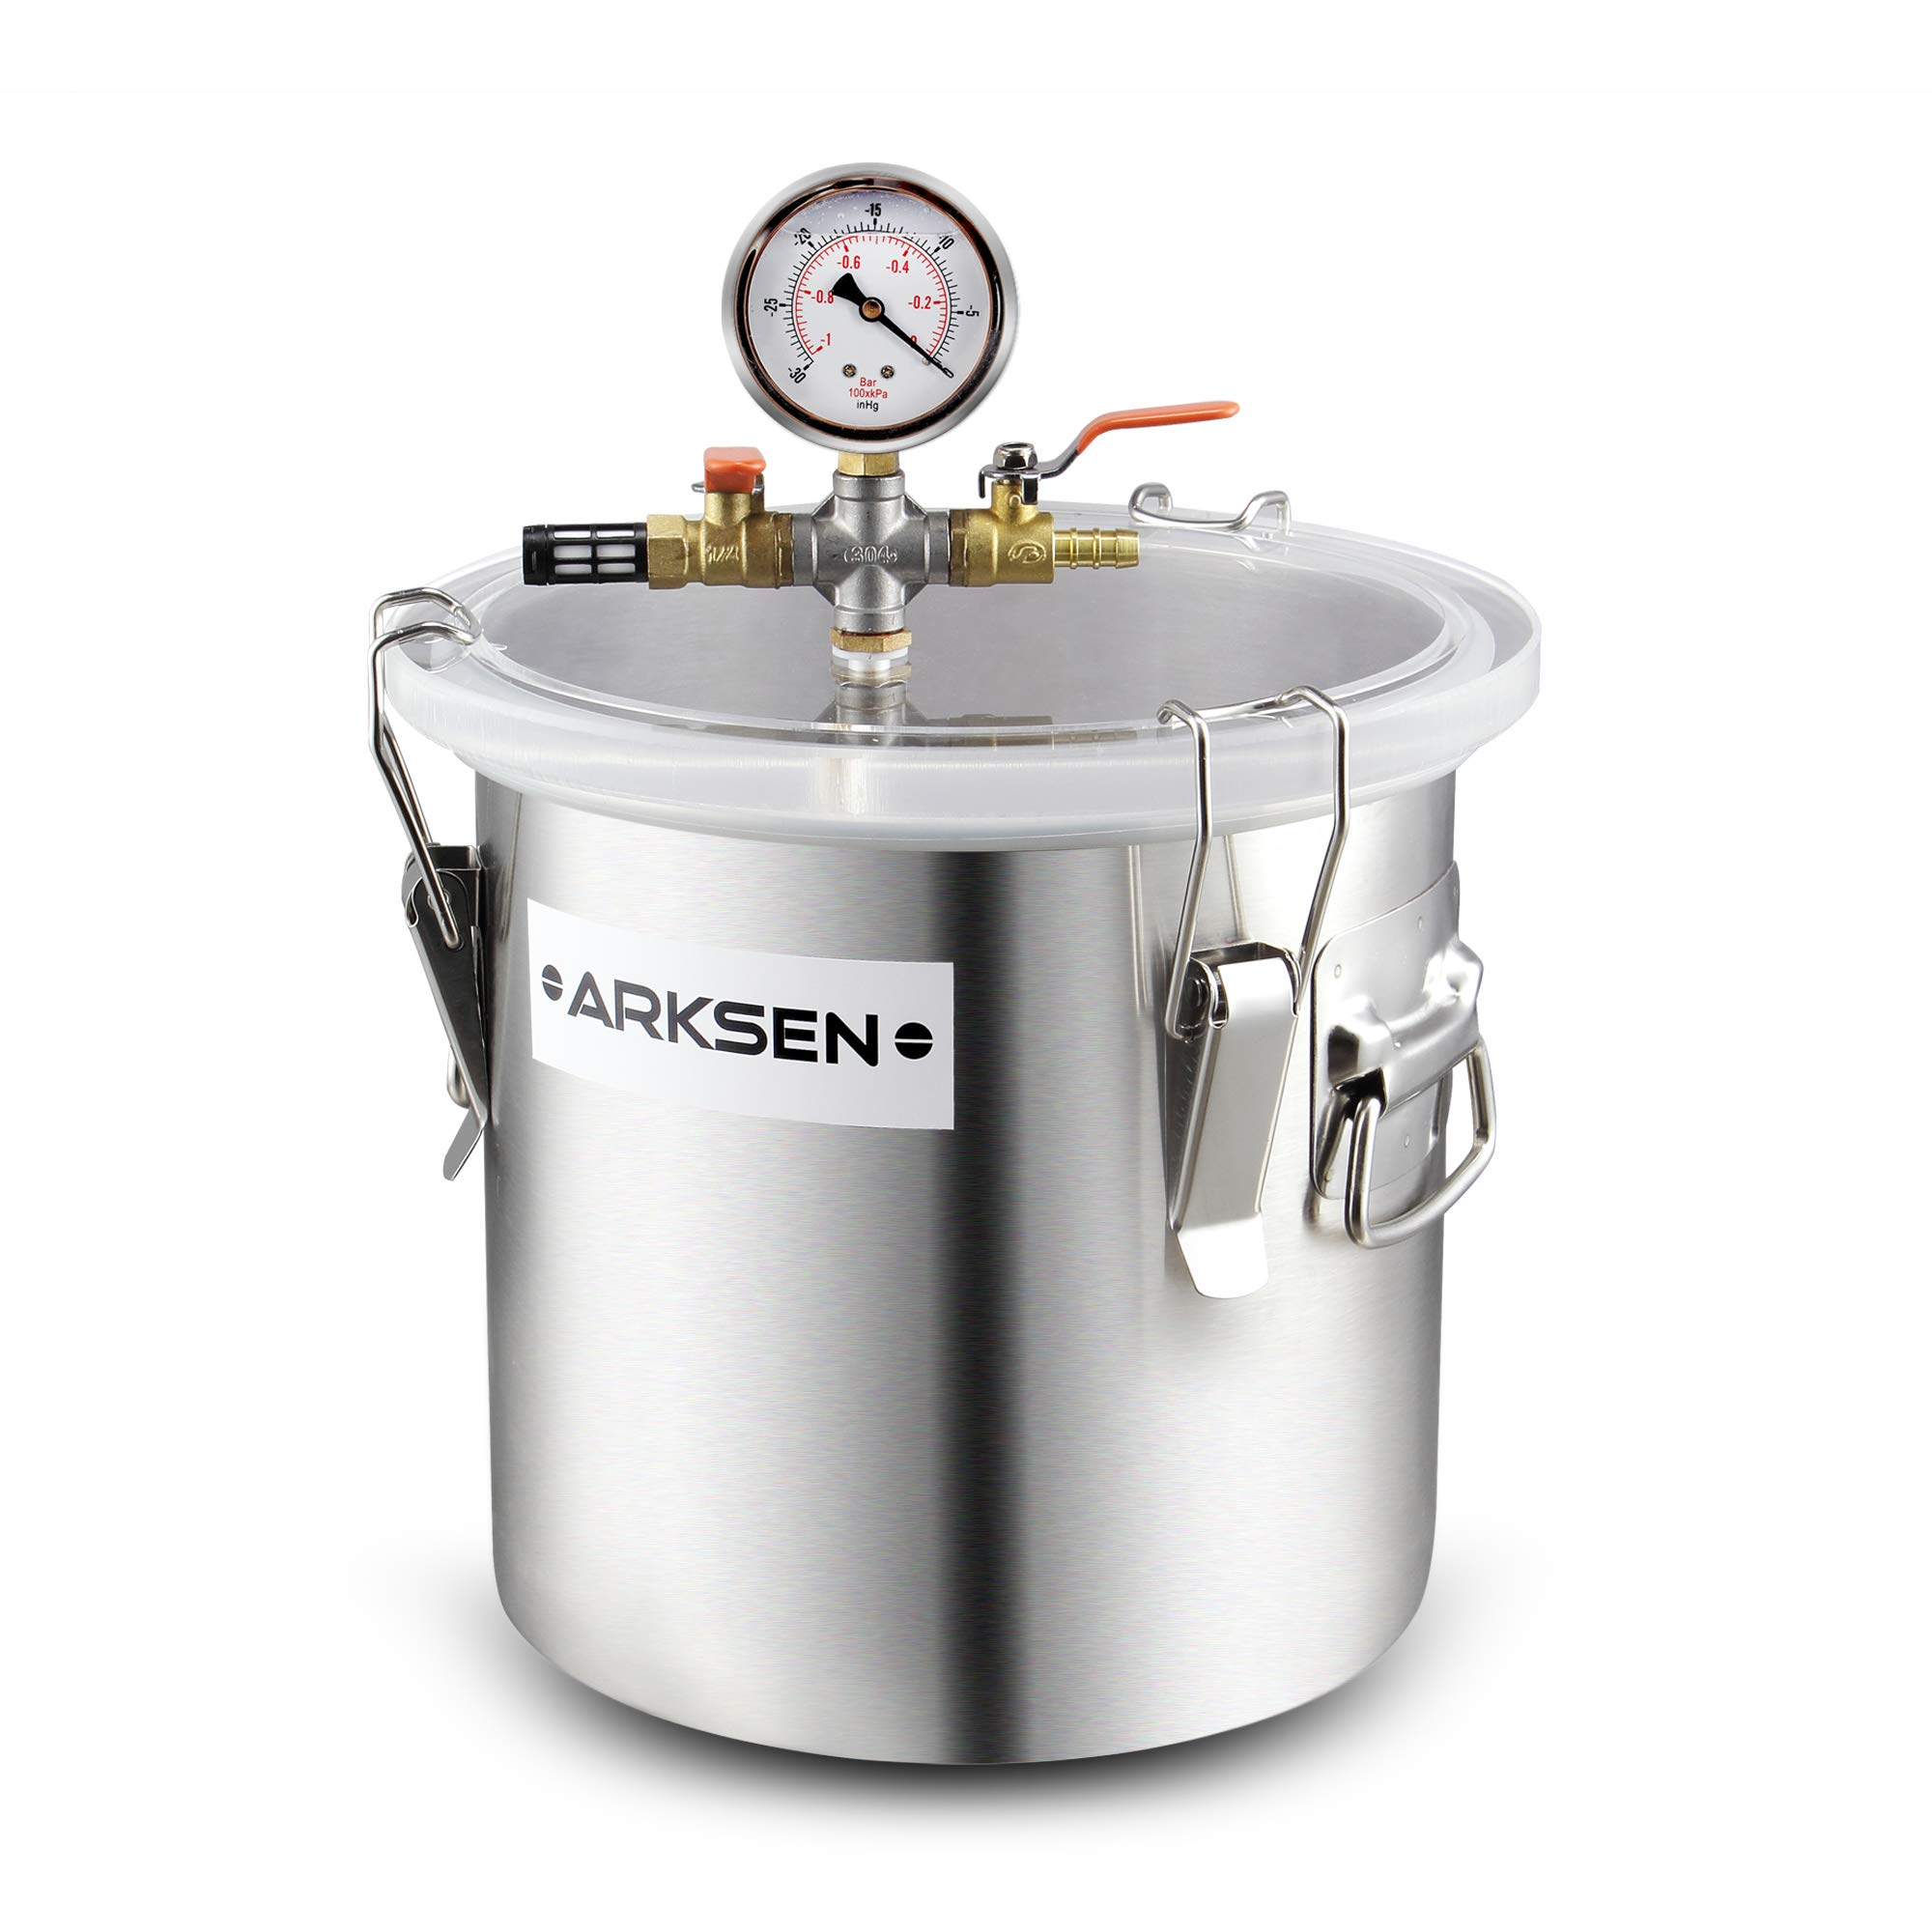 Arksen 3 Gallon Vacuum Chamber Stainless Steel Degassing Urethanes Silicone Resin Epoxies Lid Kit w/ 50 Micron Air Filter by ARKSEN